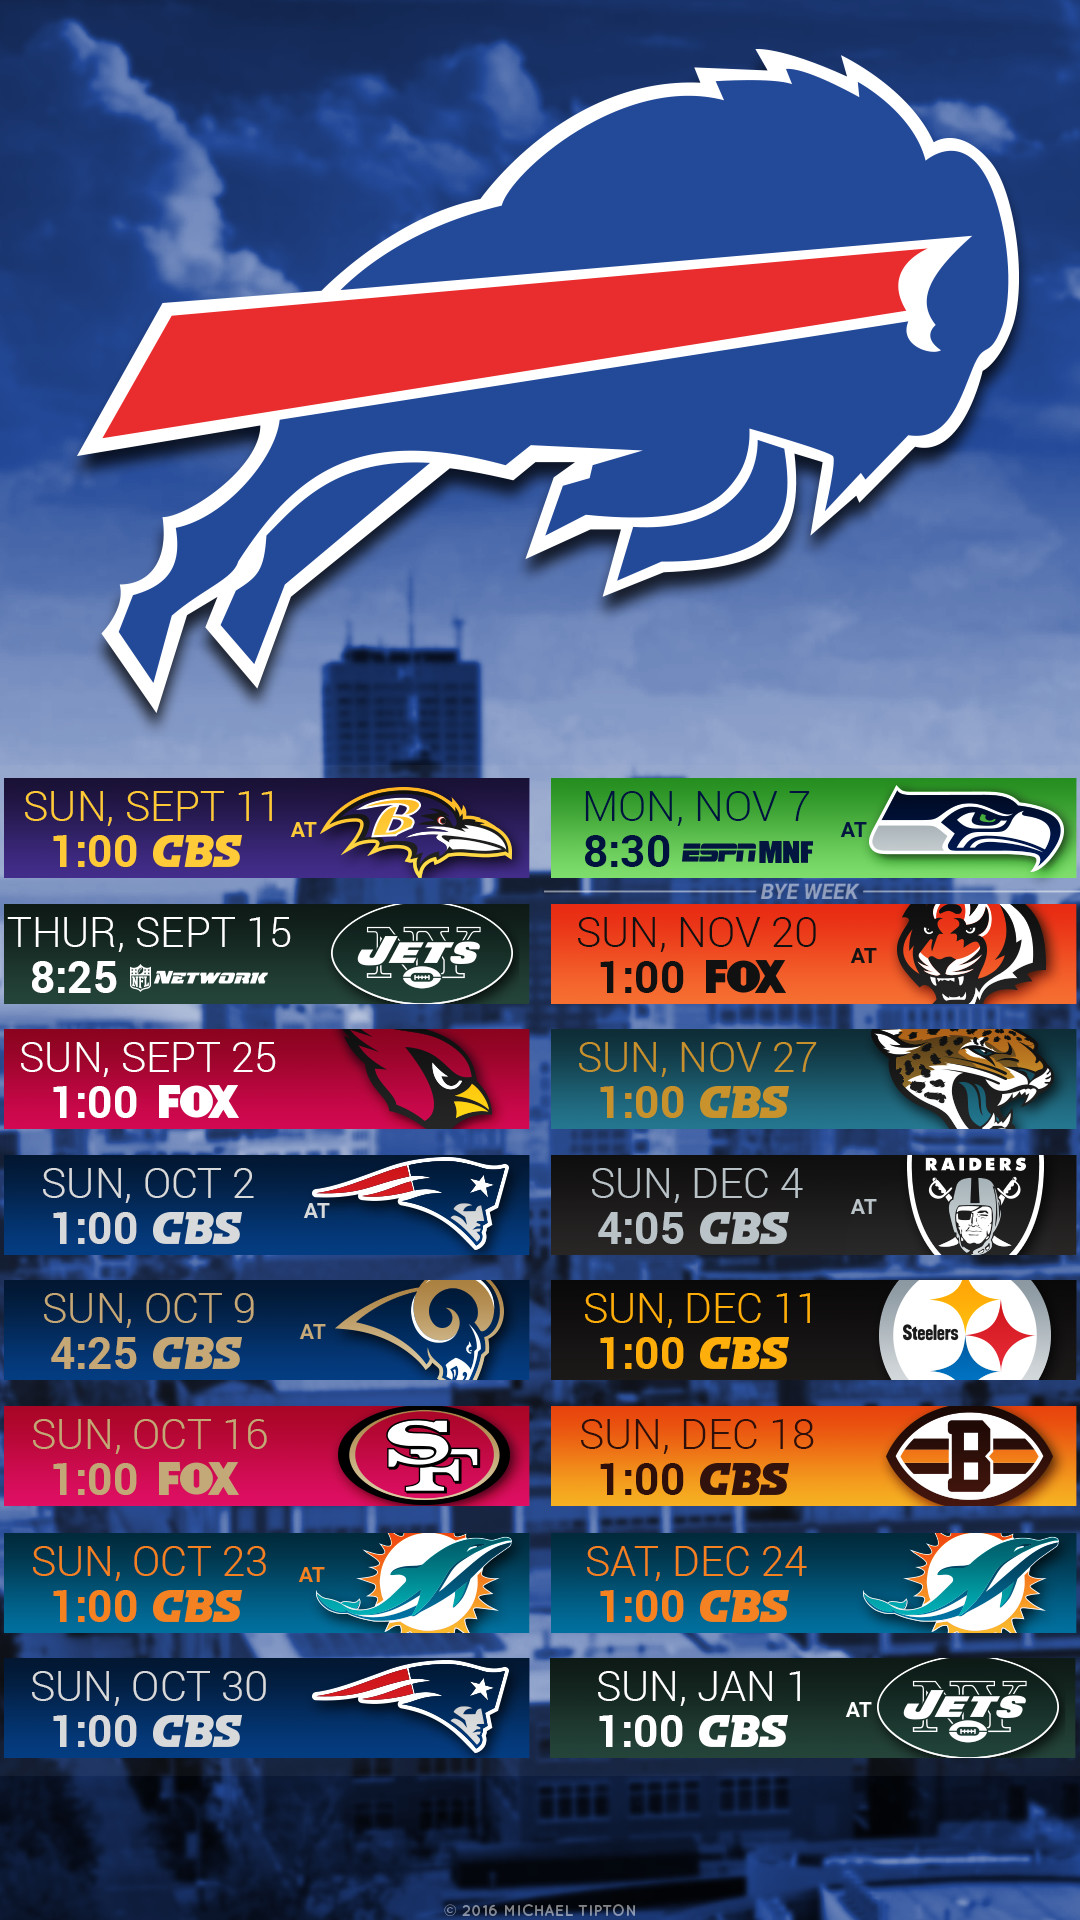 1080x1920 Buffalo Bills 2016 Schedule Logo Wallpaper Iphone 5 6 7 Galaxy S6